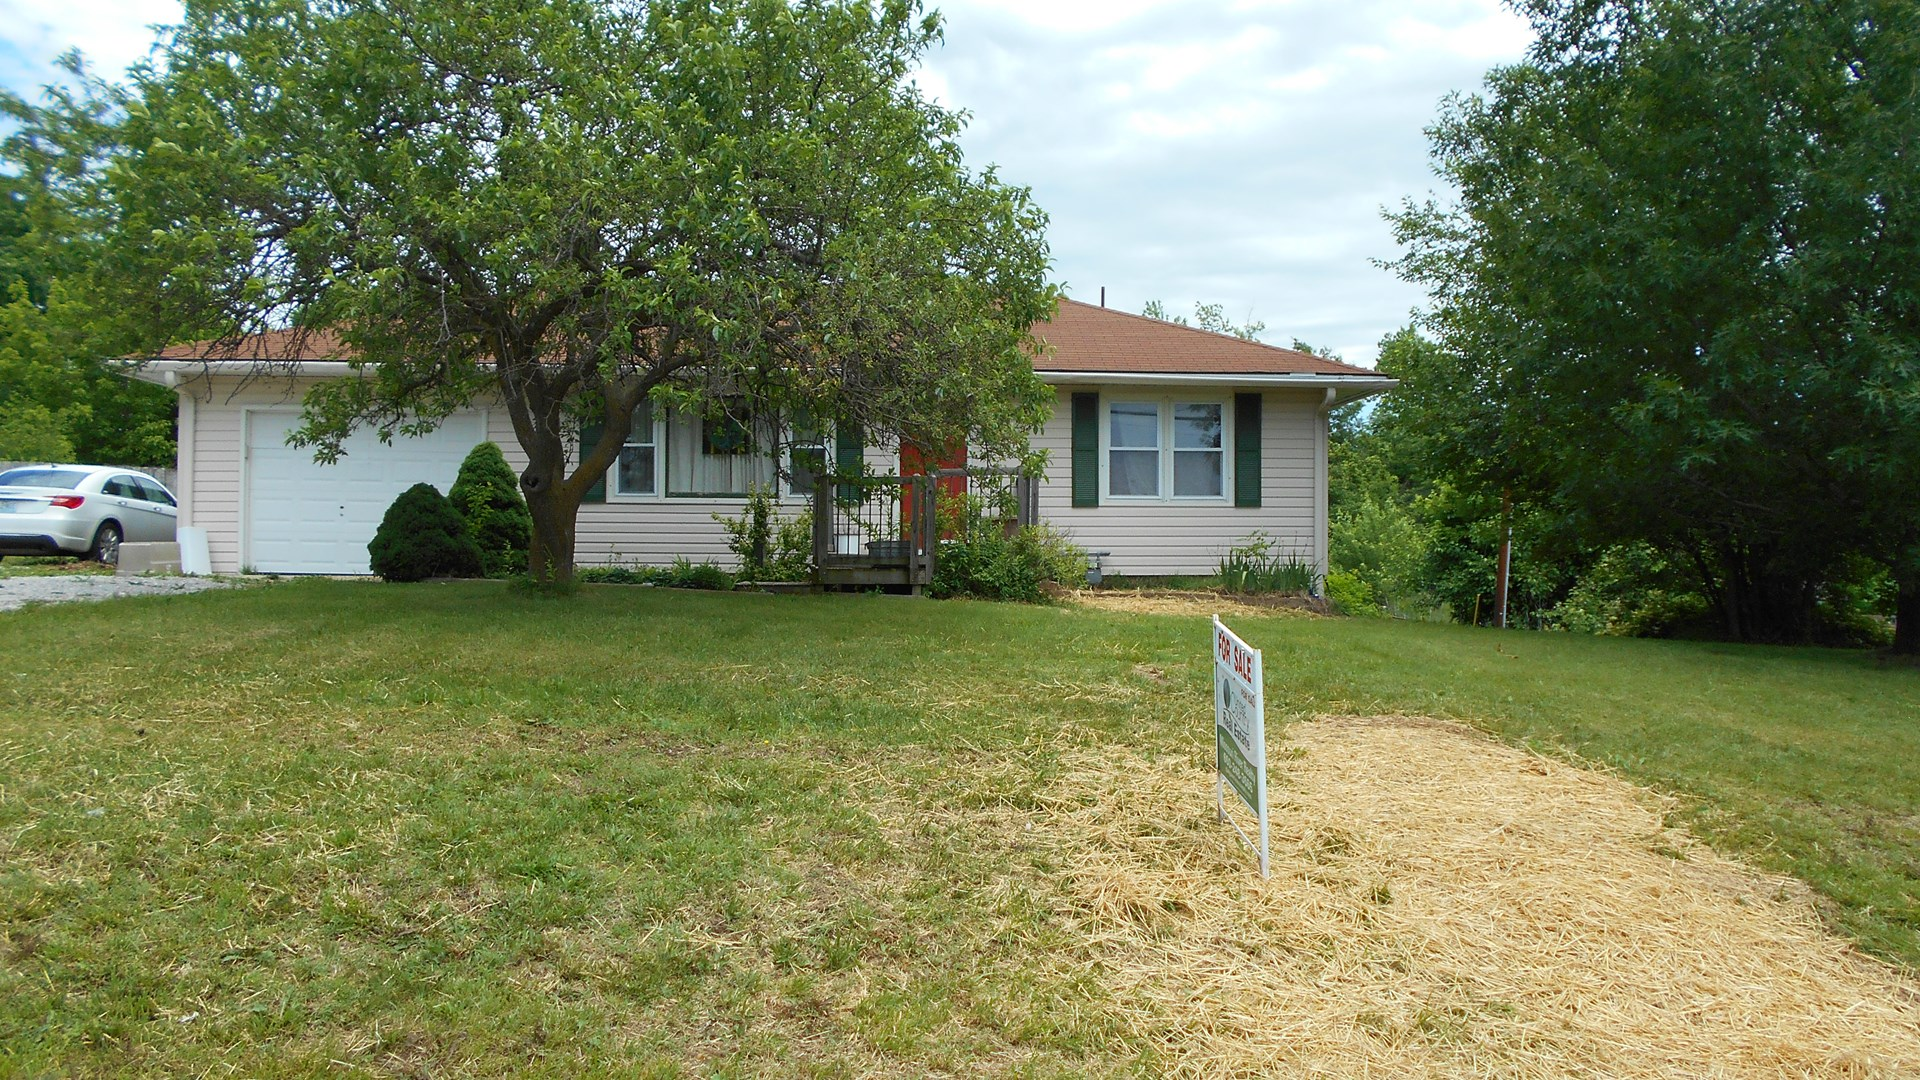 home for sale in boone county mo fenced yard 3bed 2bath rh glasgowmissourirealty com